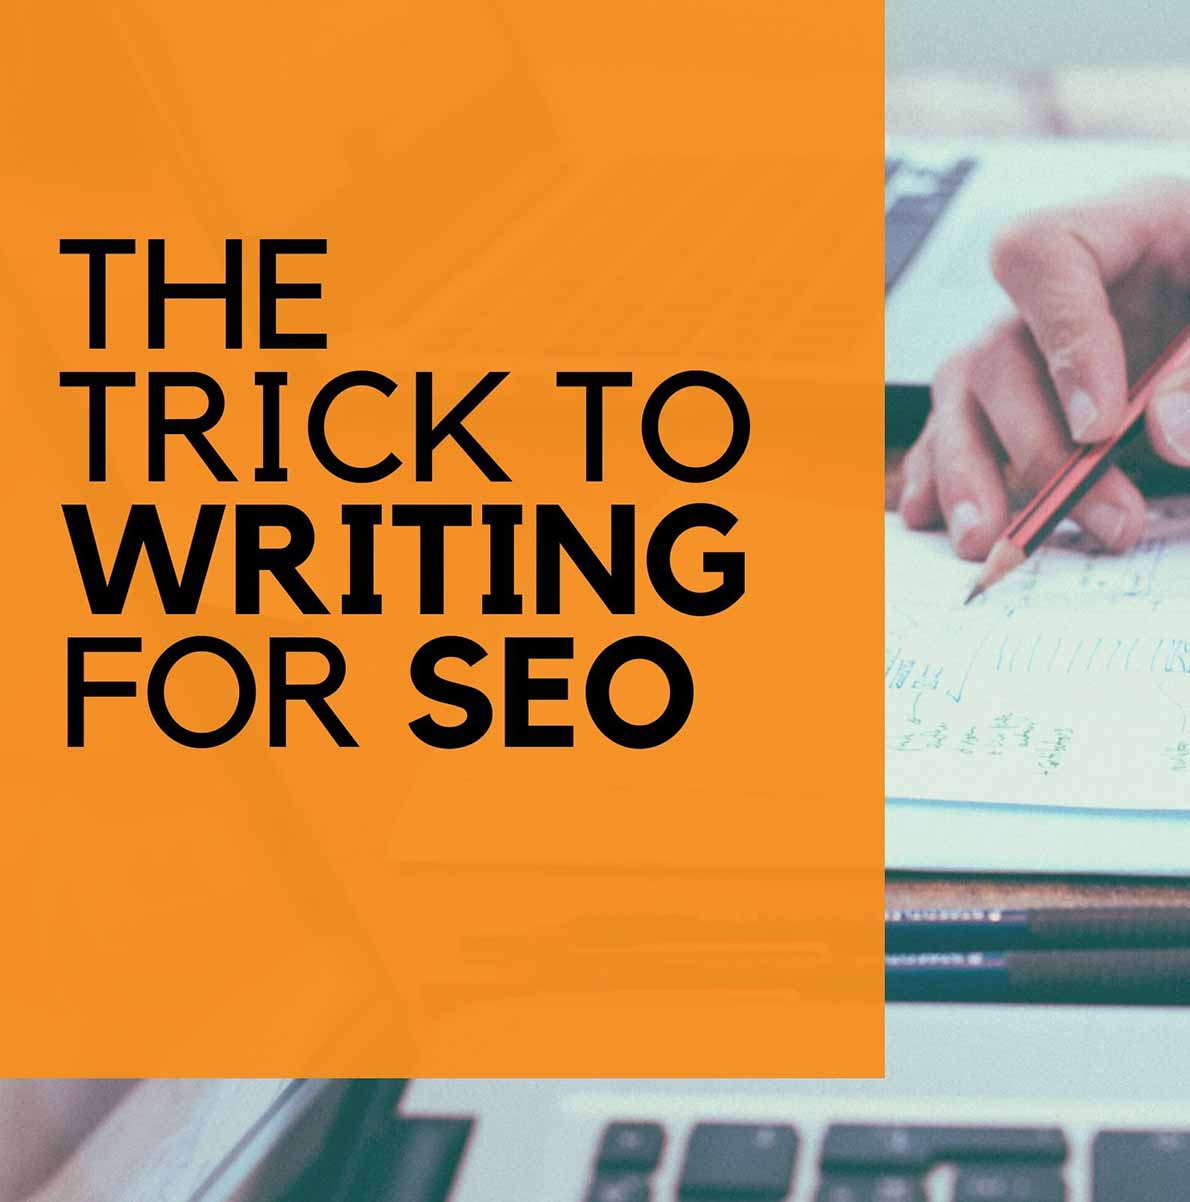 SEO Writing Tips for Beginners